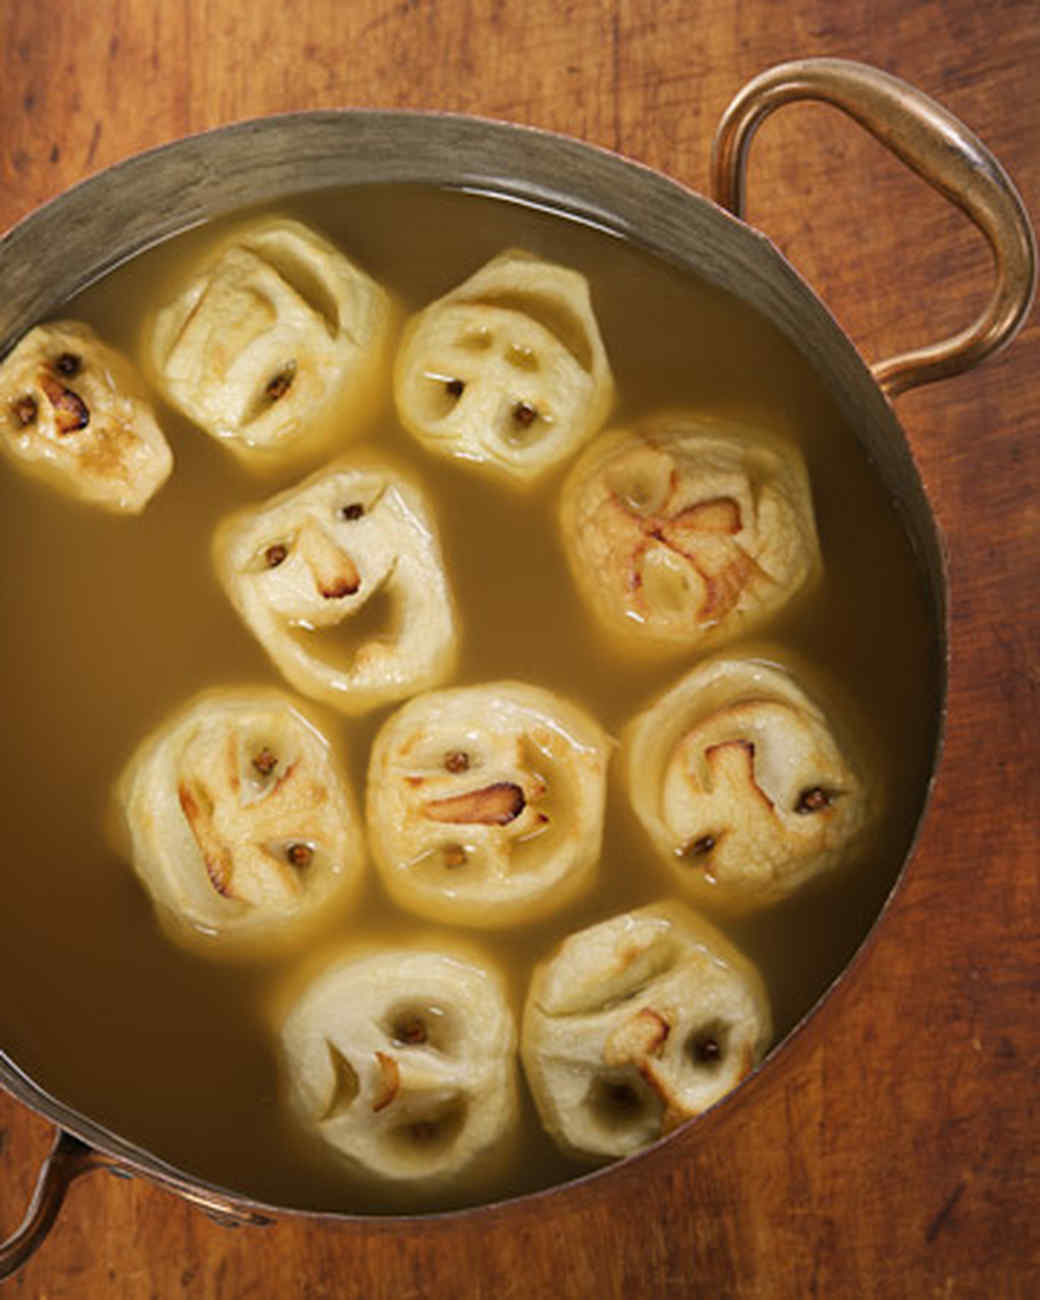 13 hauntingly good halloween potluck ideas martha stewart - Gruesome Halloween Food